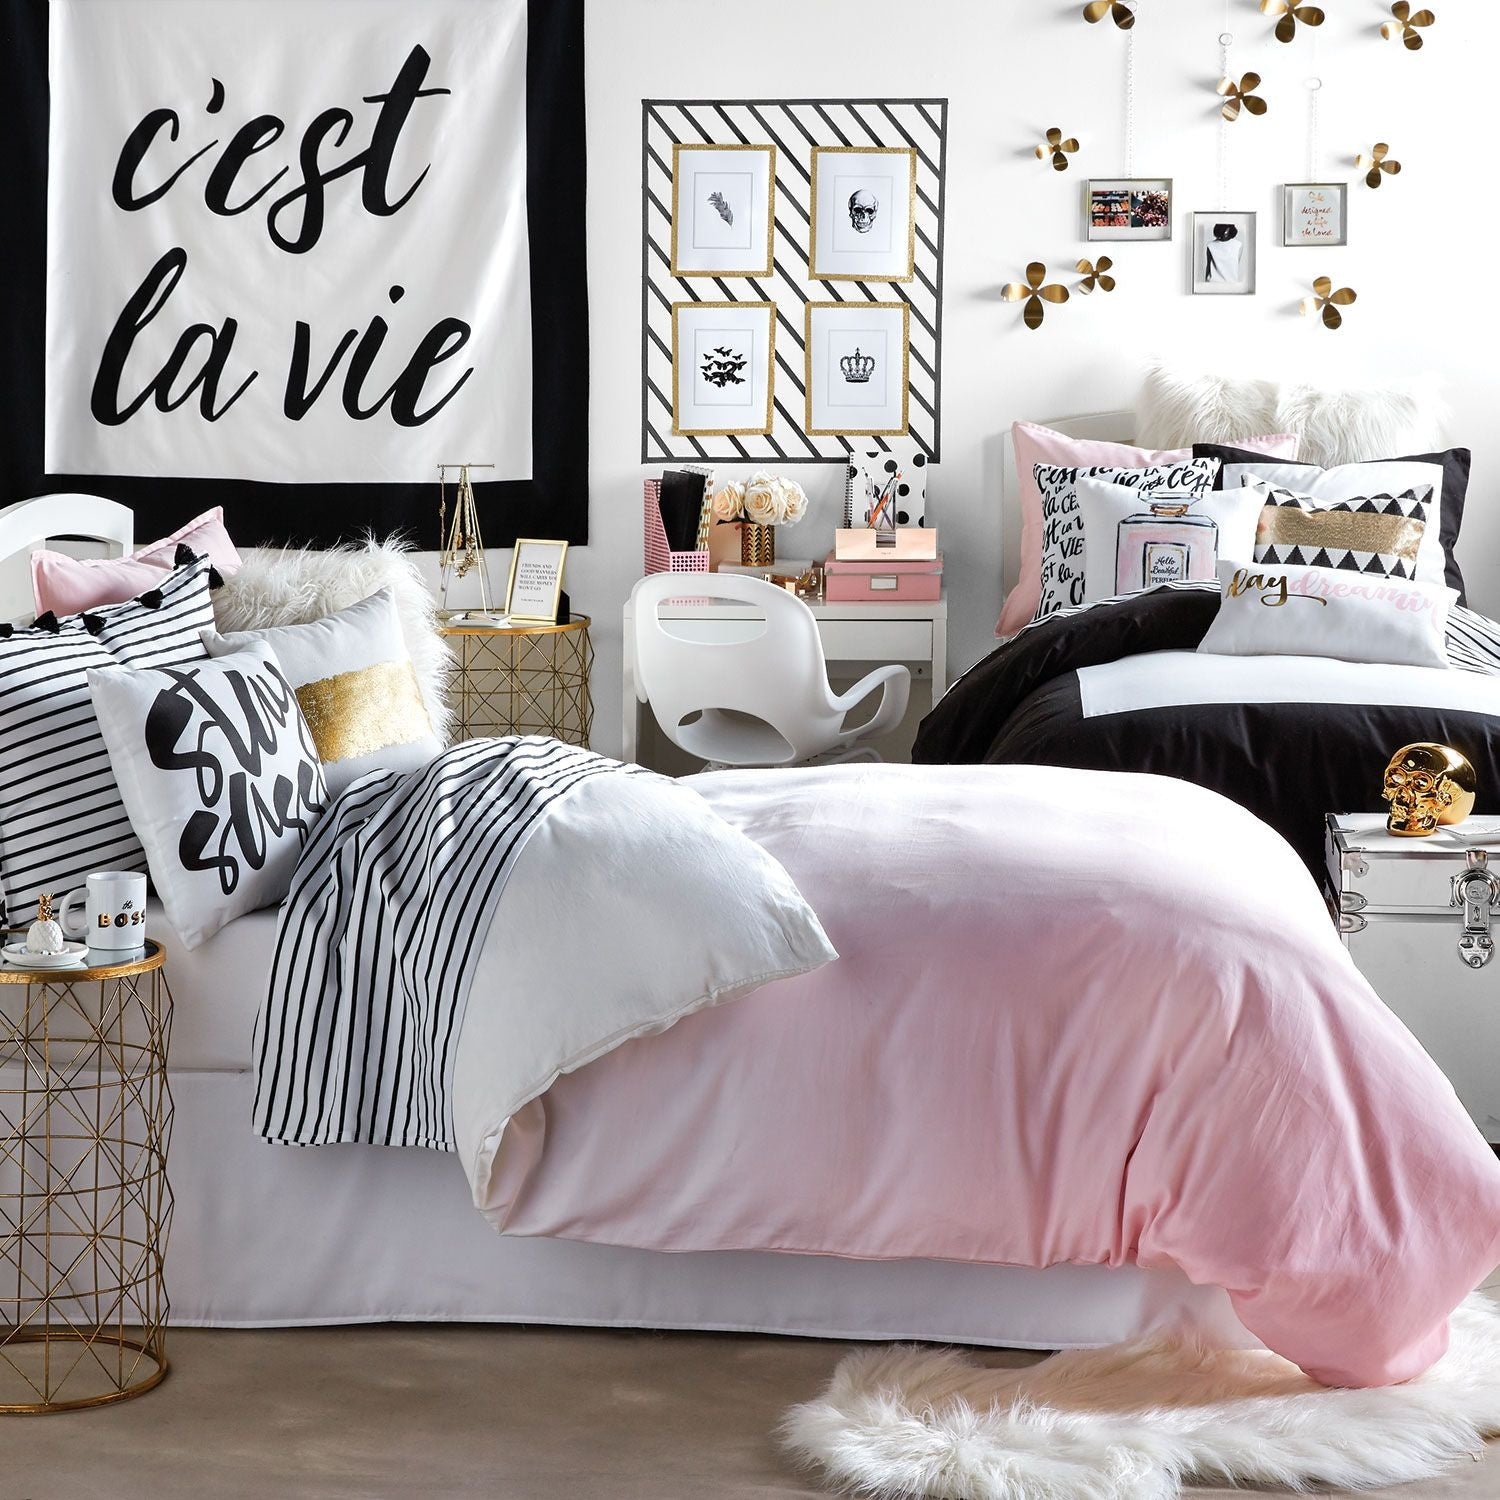 Pink Ombre Duvet Cover and Sham Set - Full/Queen